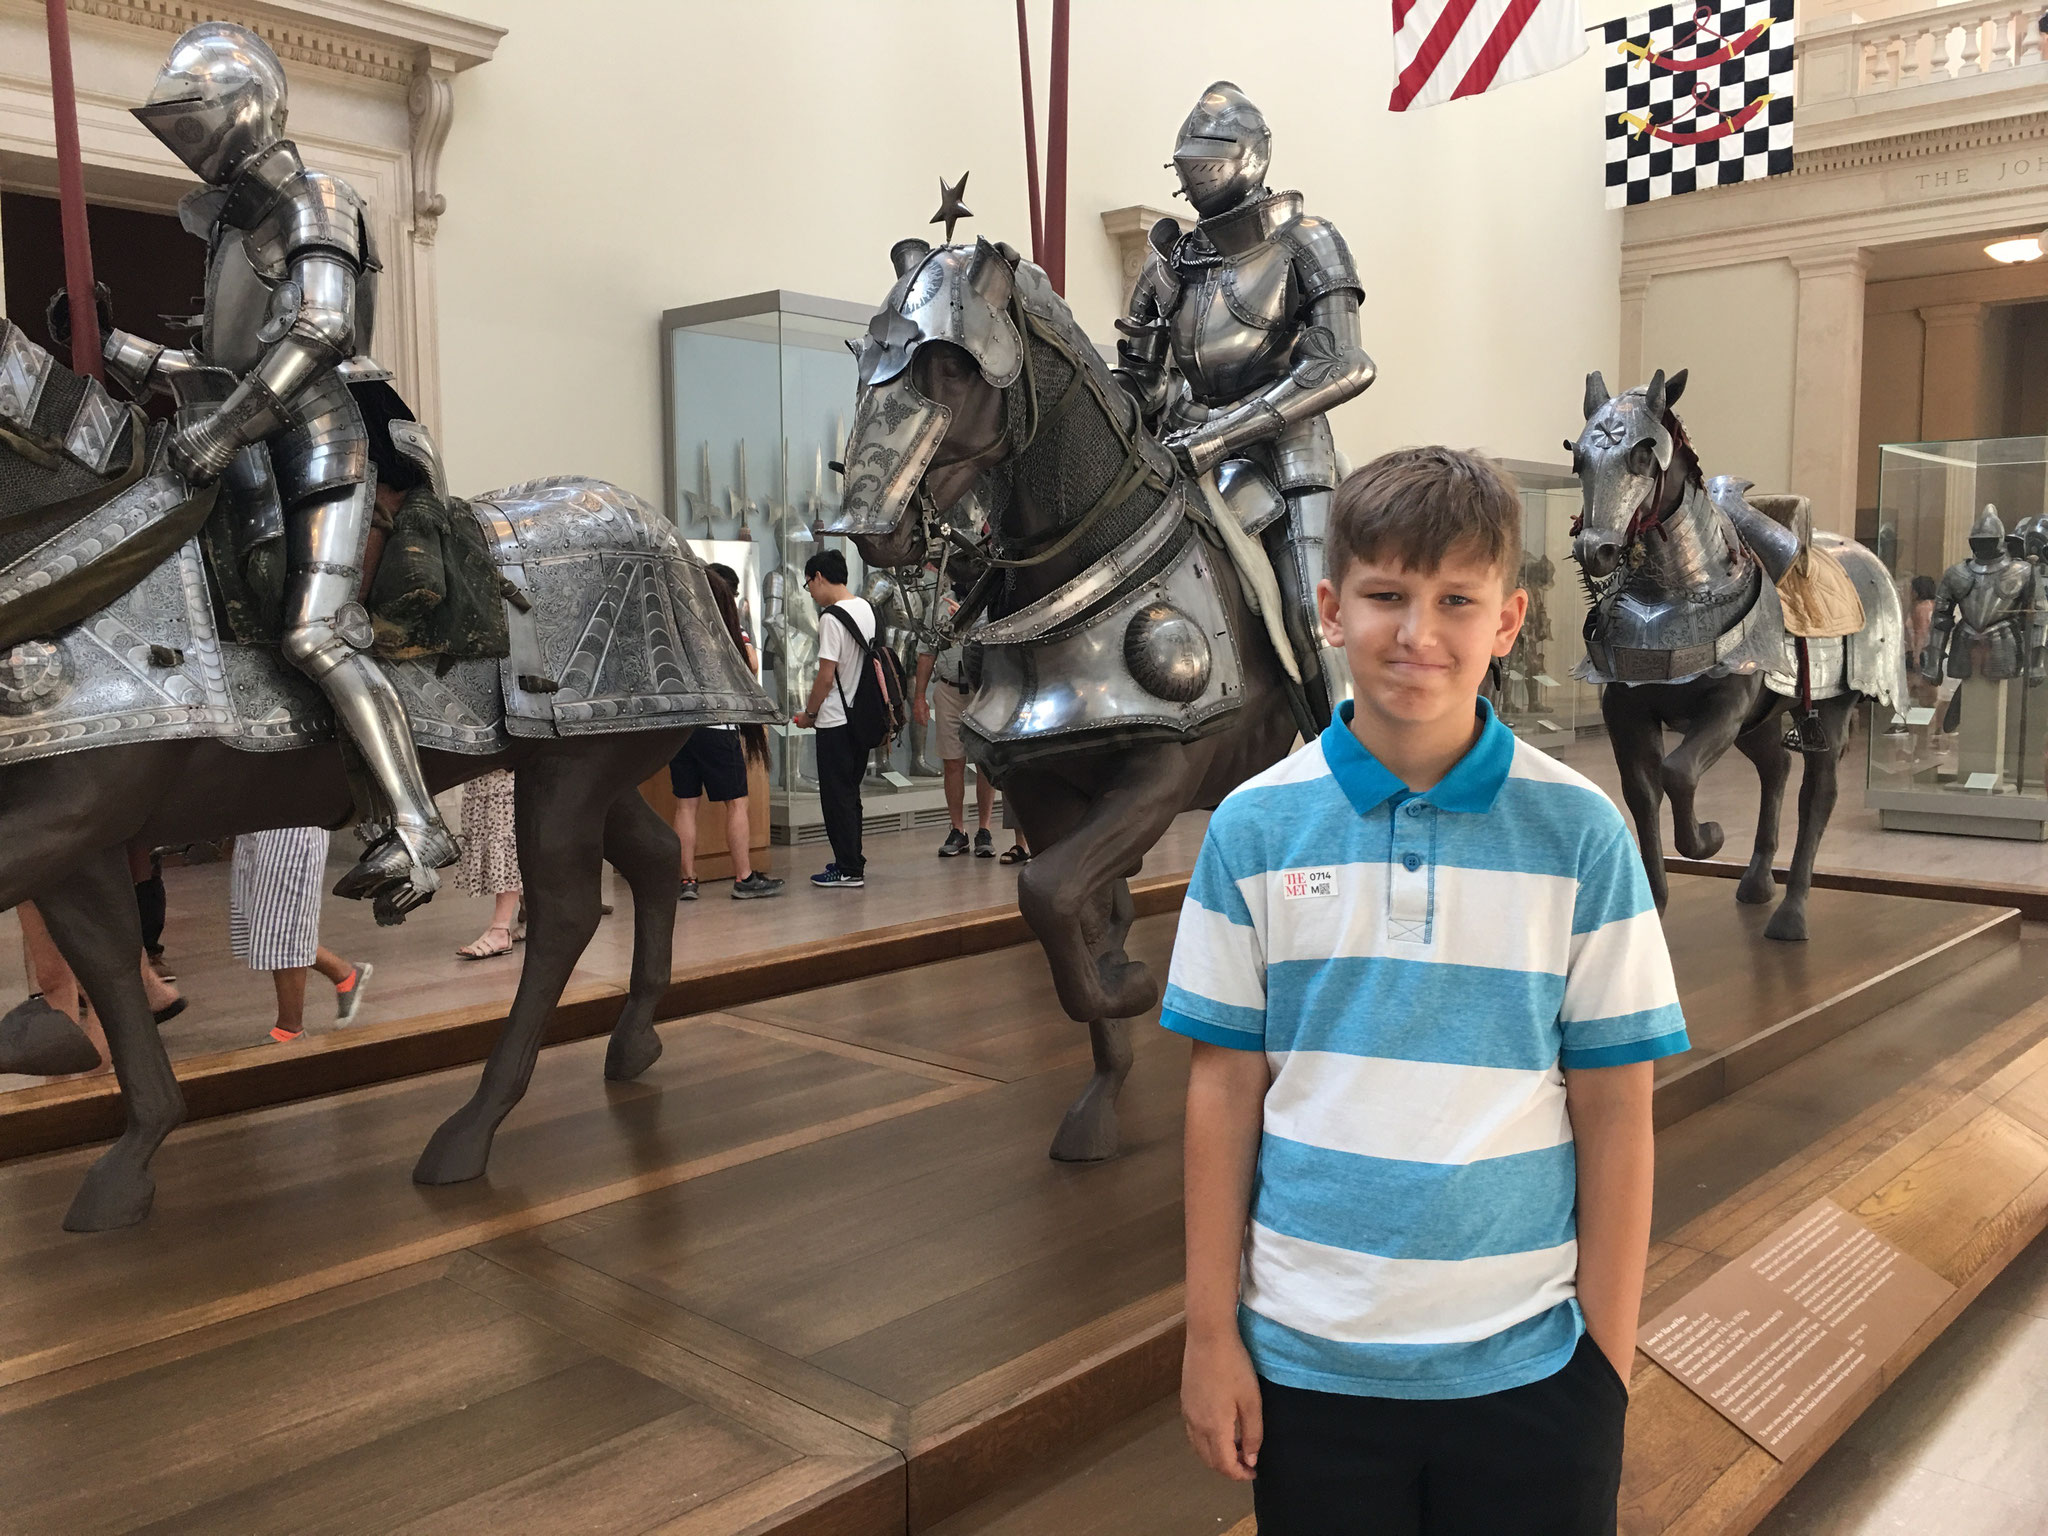 Braden at the museum